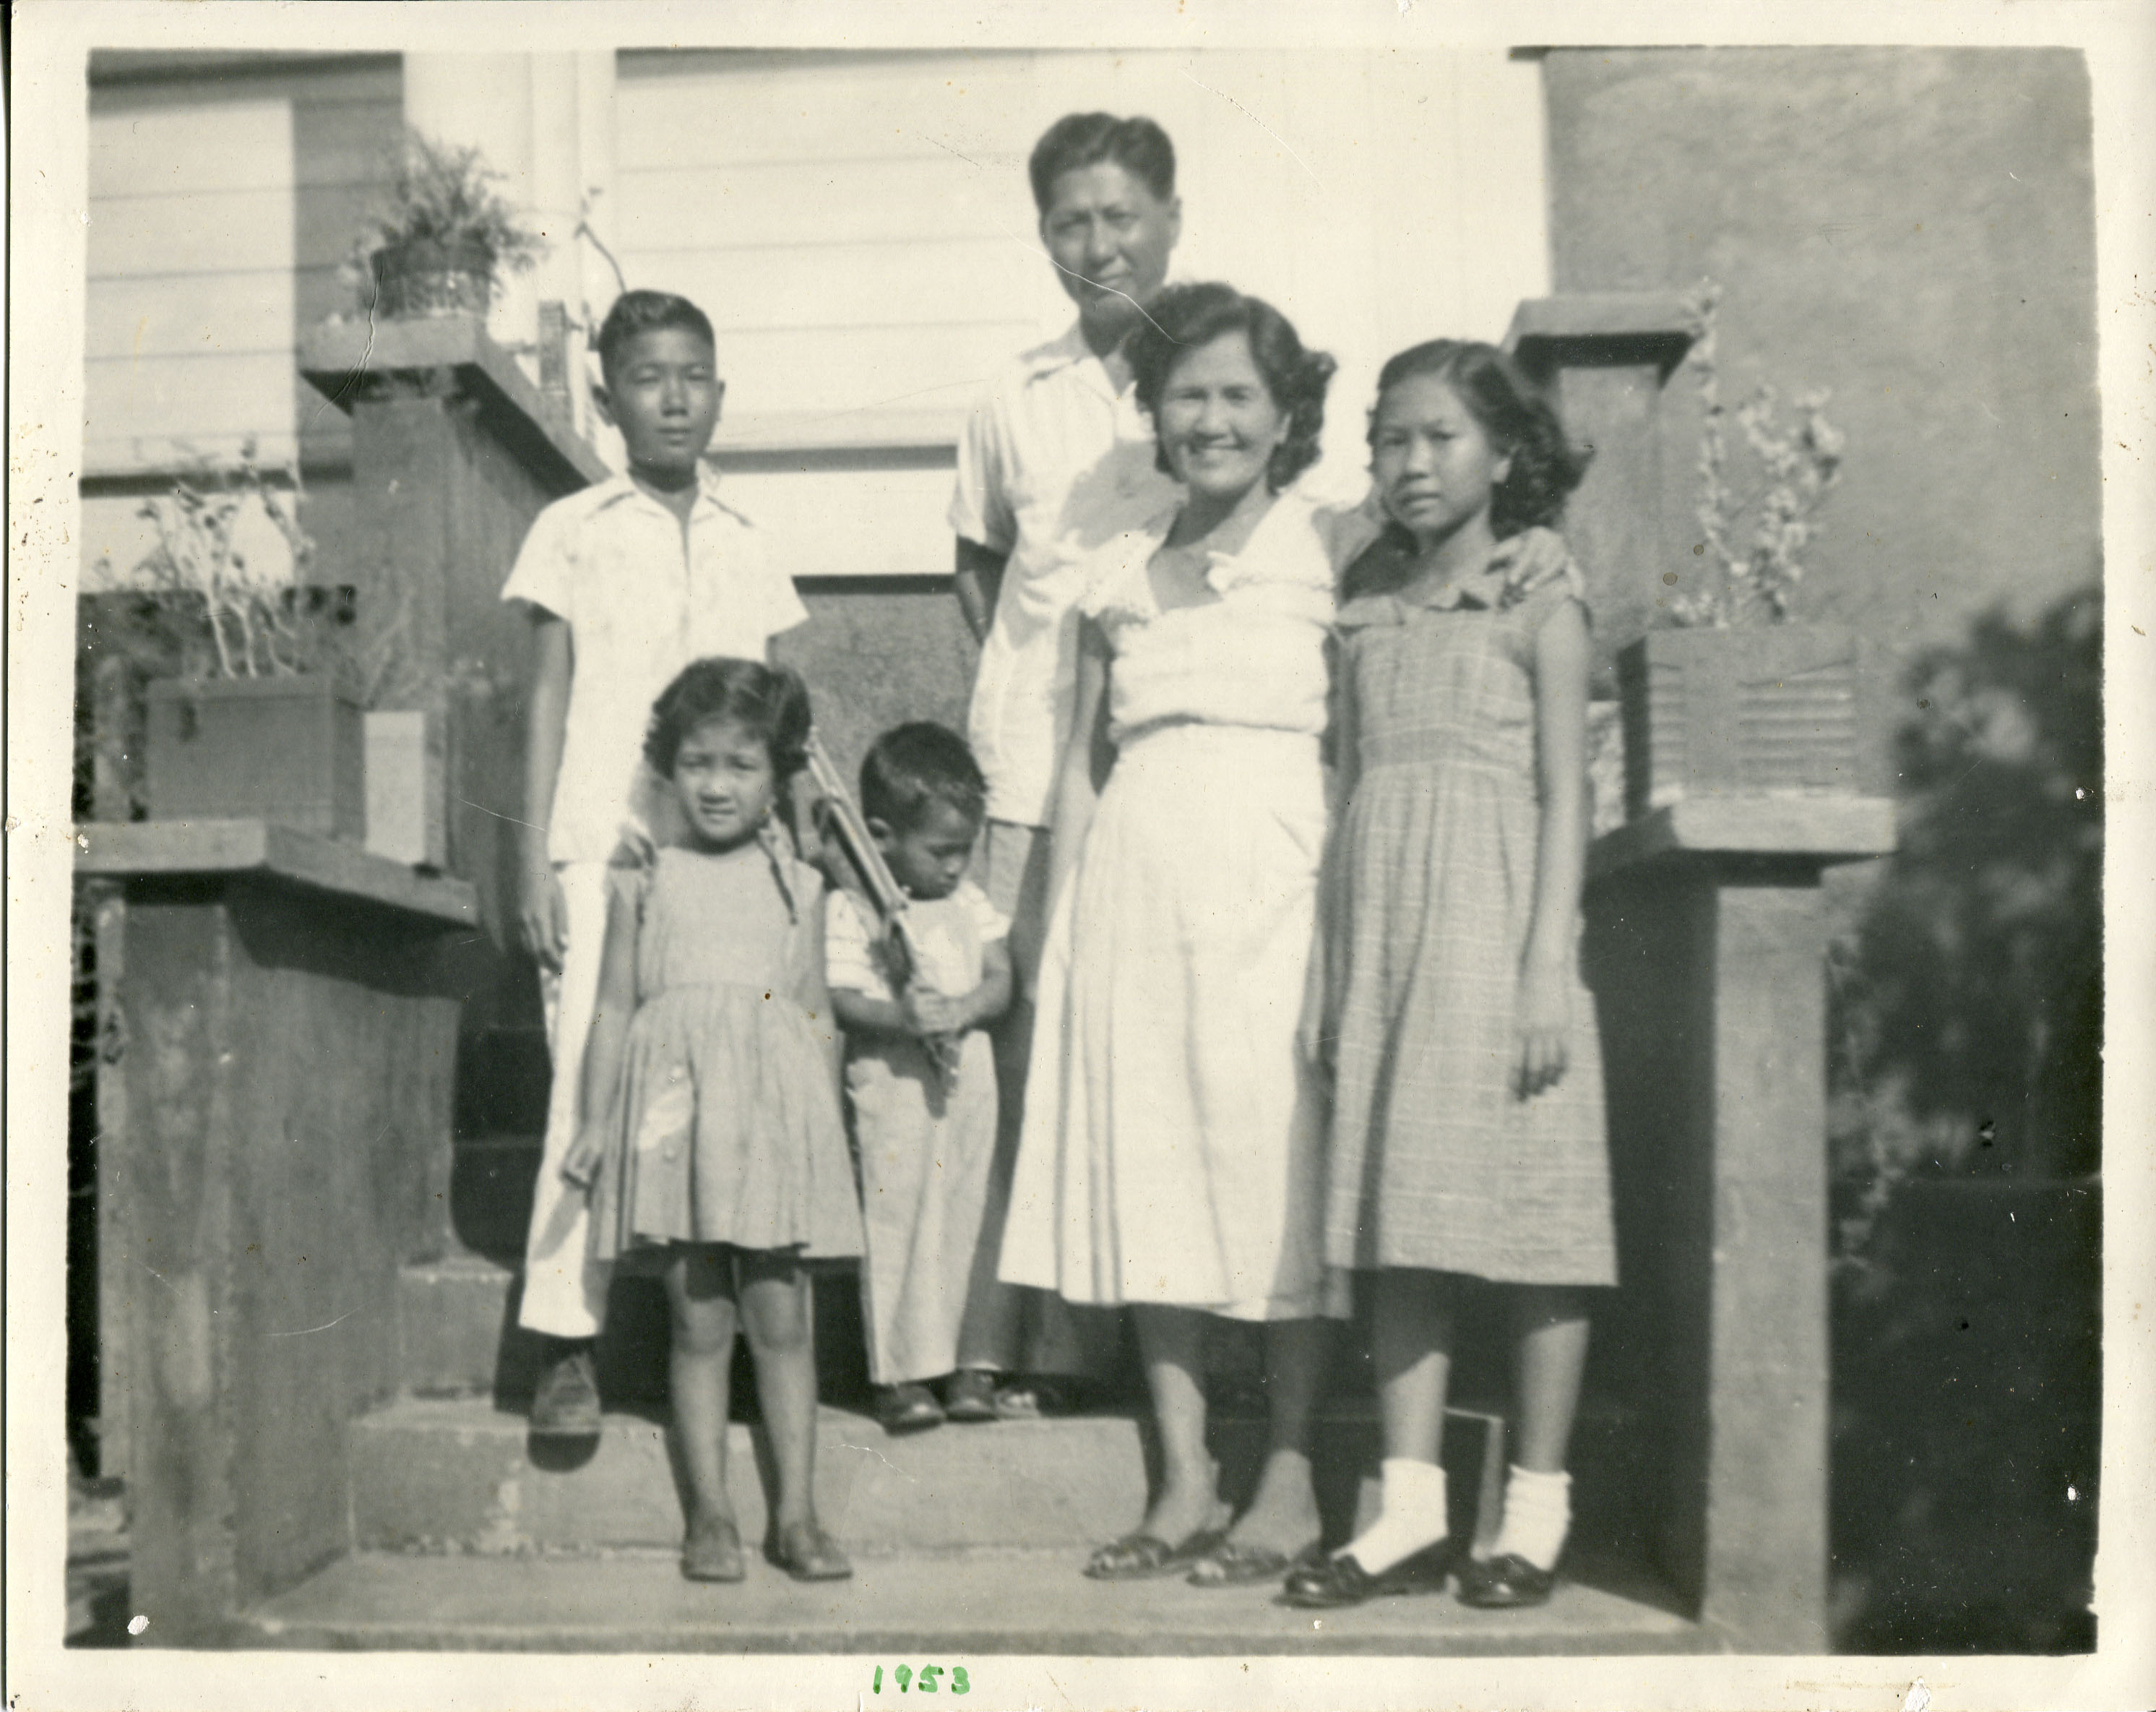 "Family photo 1953 owned by Etta McKenna. 1953 photo of family standing on the steps in front of our old house. Parents: Hermogenes Escarrilla (father) and mother Felicula Escarrilla. Brothers Efrain, Ernie. Sister Edna  Notes from Sarah Carlson, in discussion with McKenna: ""Important to me because this is the only copy saved as all photos were destroyed due to termite infestation. That is why I want this digitized. Also makes me reminisce of all the things I did growing up in the house.   Any views, findings, conclusions, or recommendations expressed in this story do not necessarily represent those of the National Endowment for the Humanities. [Copyright] Field Museum of Natural History - CC BY-NC"